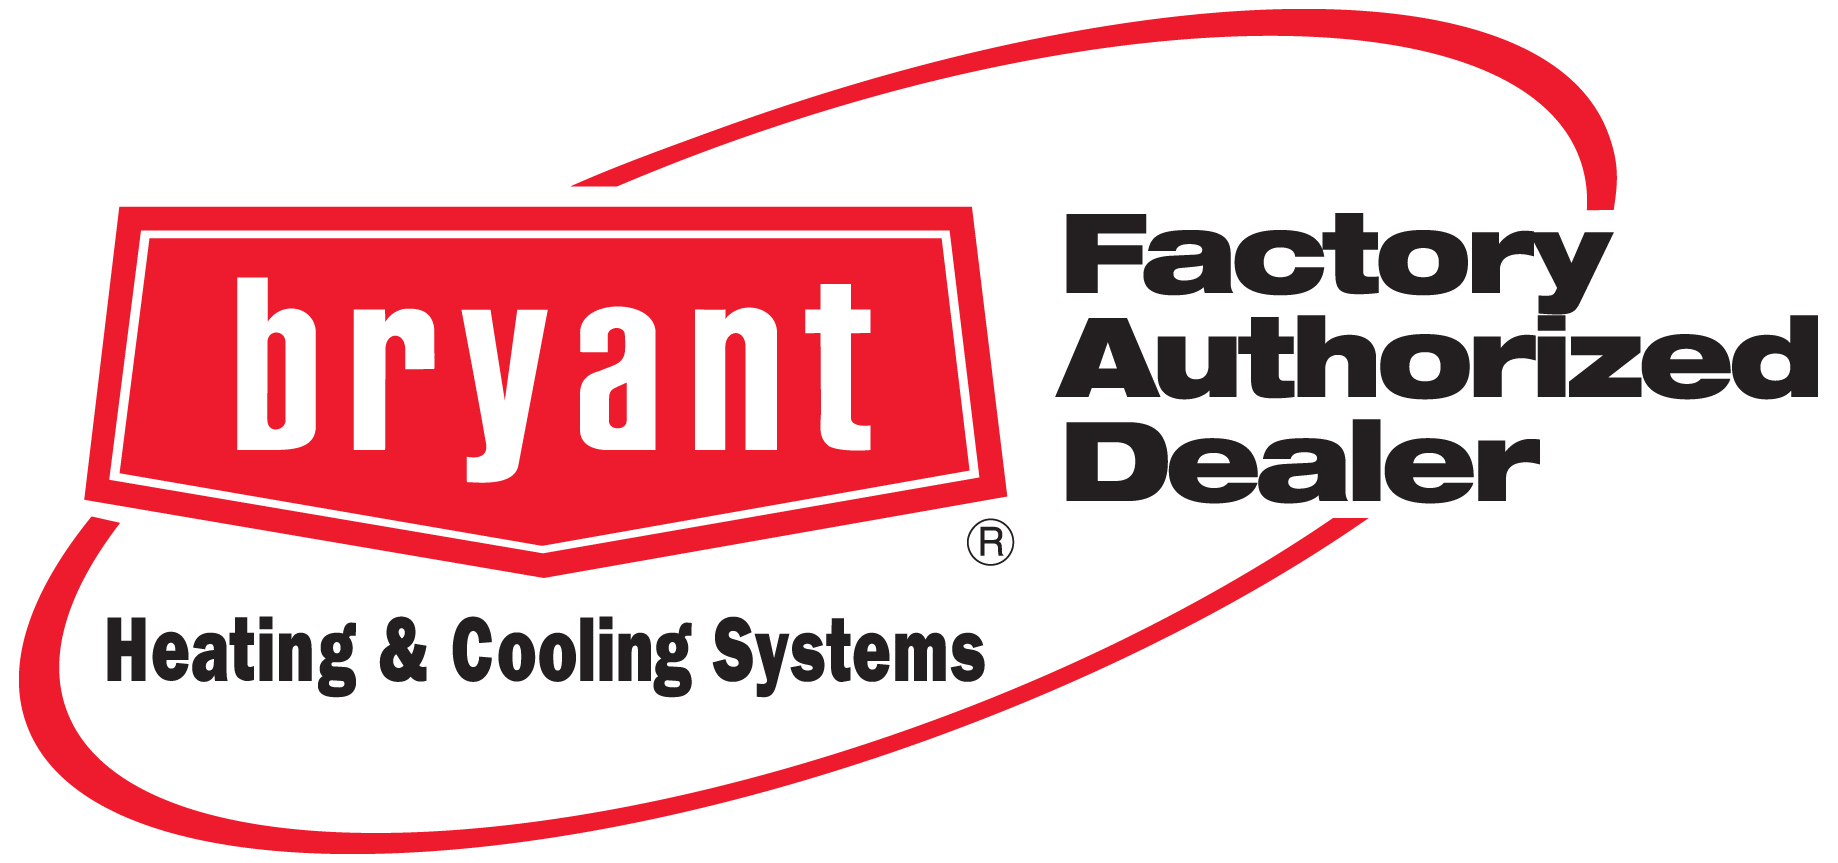 BRG Air Systems LLC works with Bryant Heating and Cooling Systems Air Conditionings in Palm Bay FL.